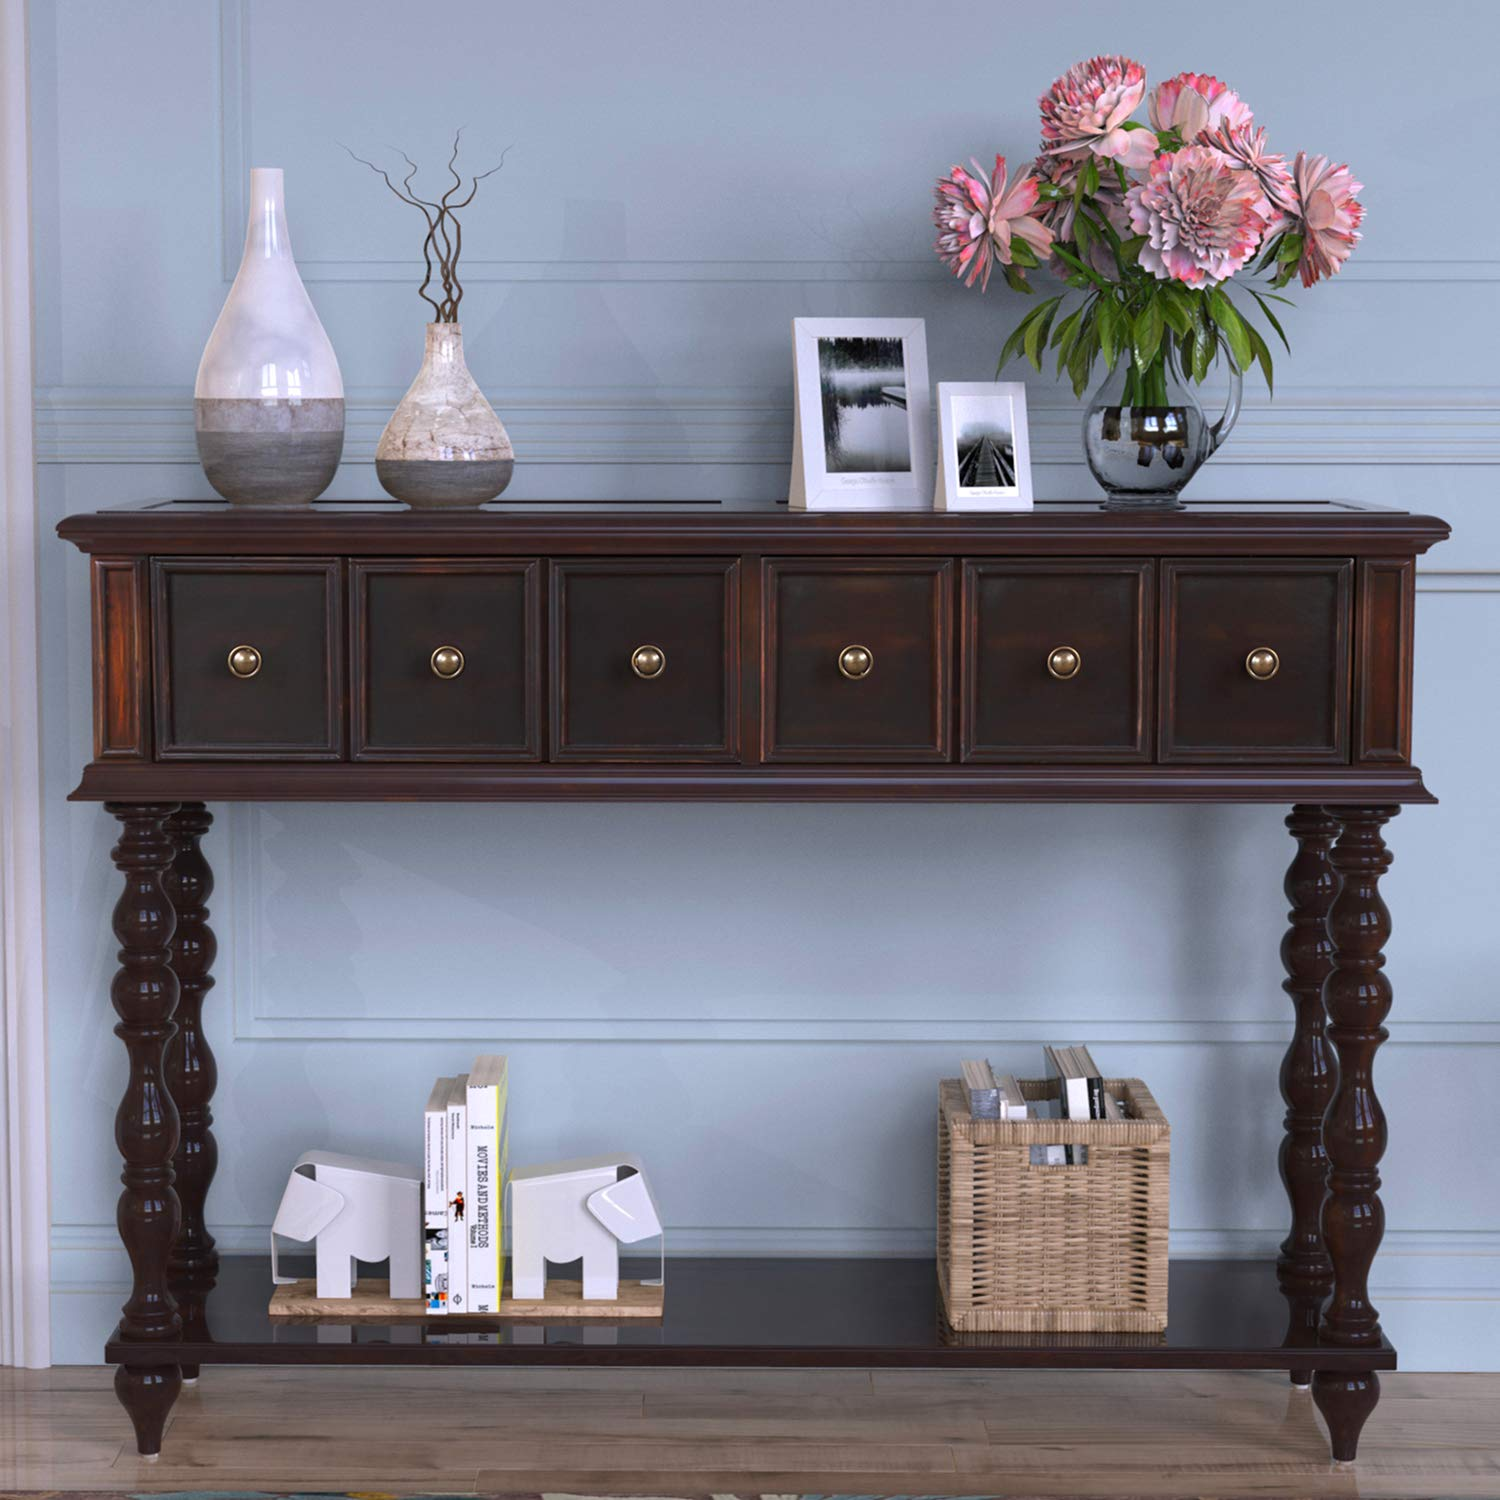 Norcia Console Table with Drawers, Antique-Inspired Hallway Entryway Table, Elegant Solid Wooden Sofa Tables Dark Brown